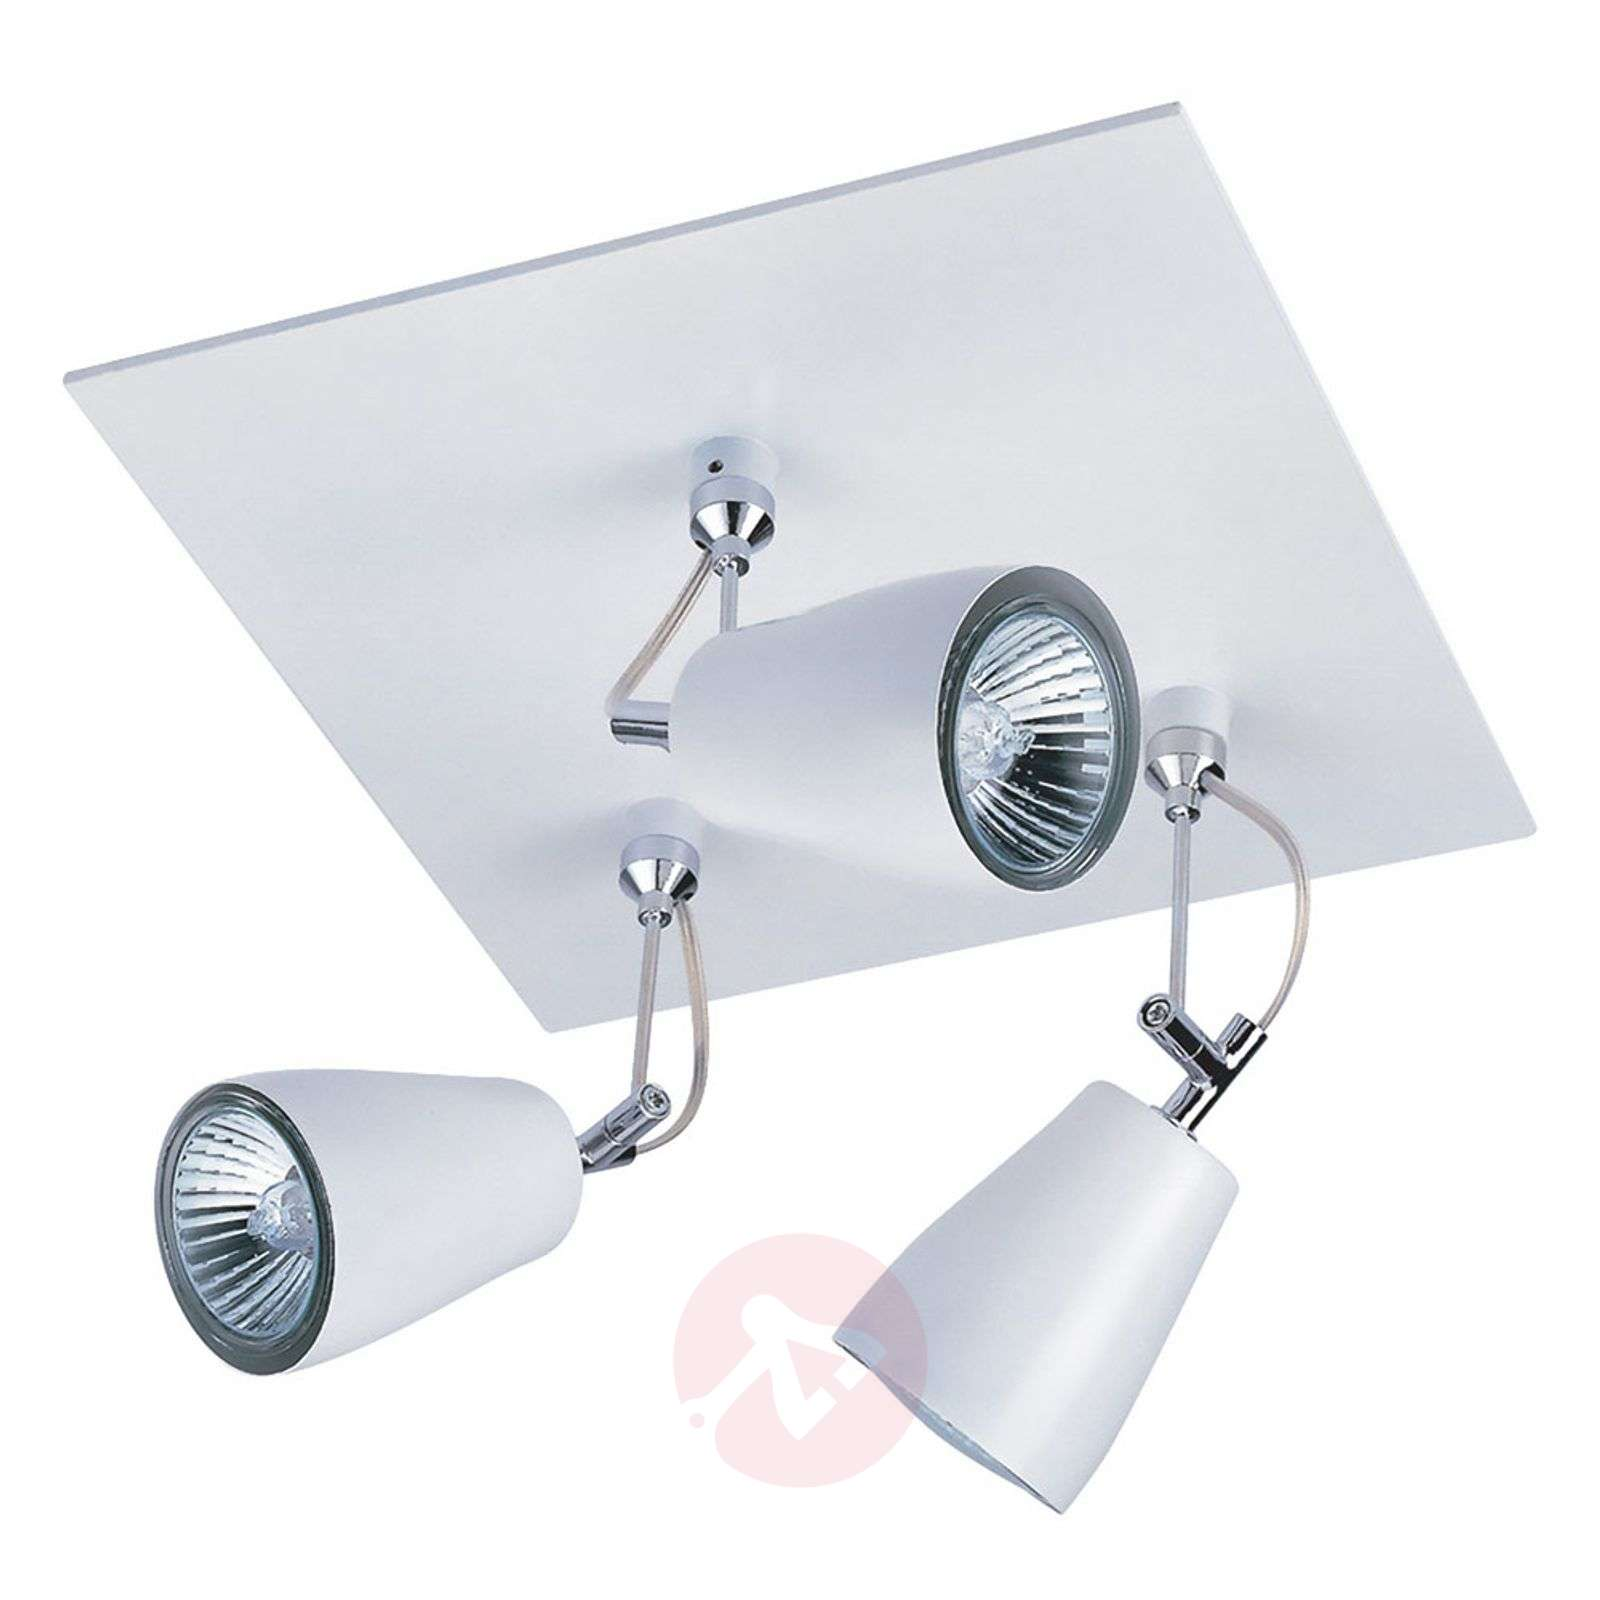 Polar Ceiling Spotlight Square-Shaped Three Bulbs-1020263-02